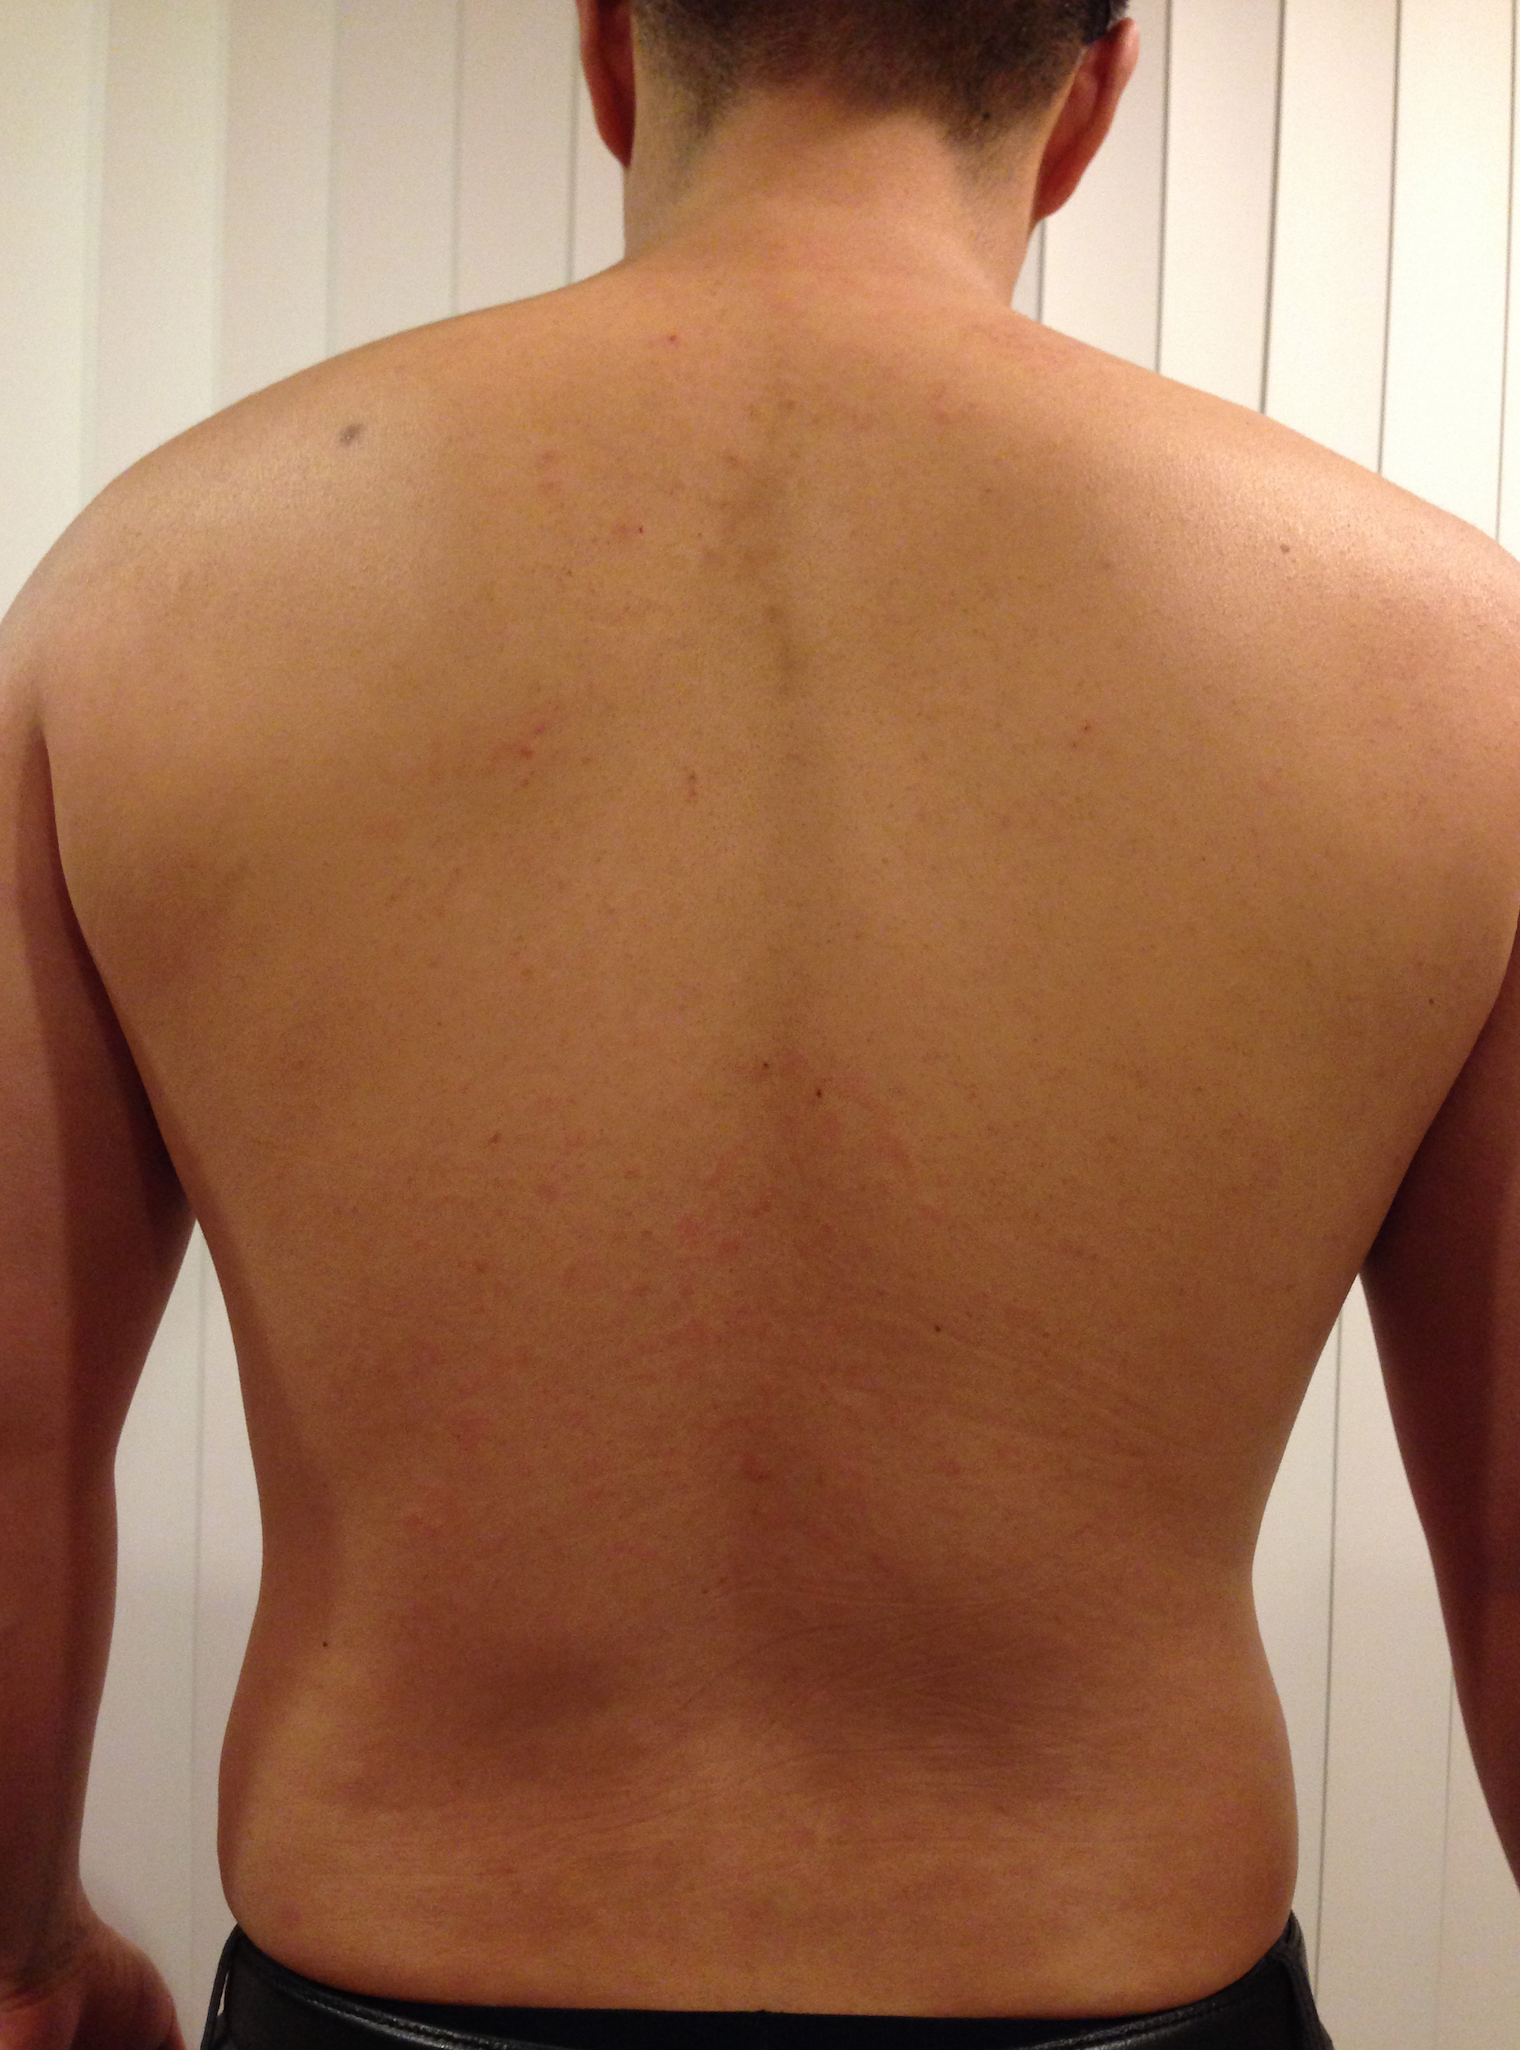 lower back rashes